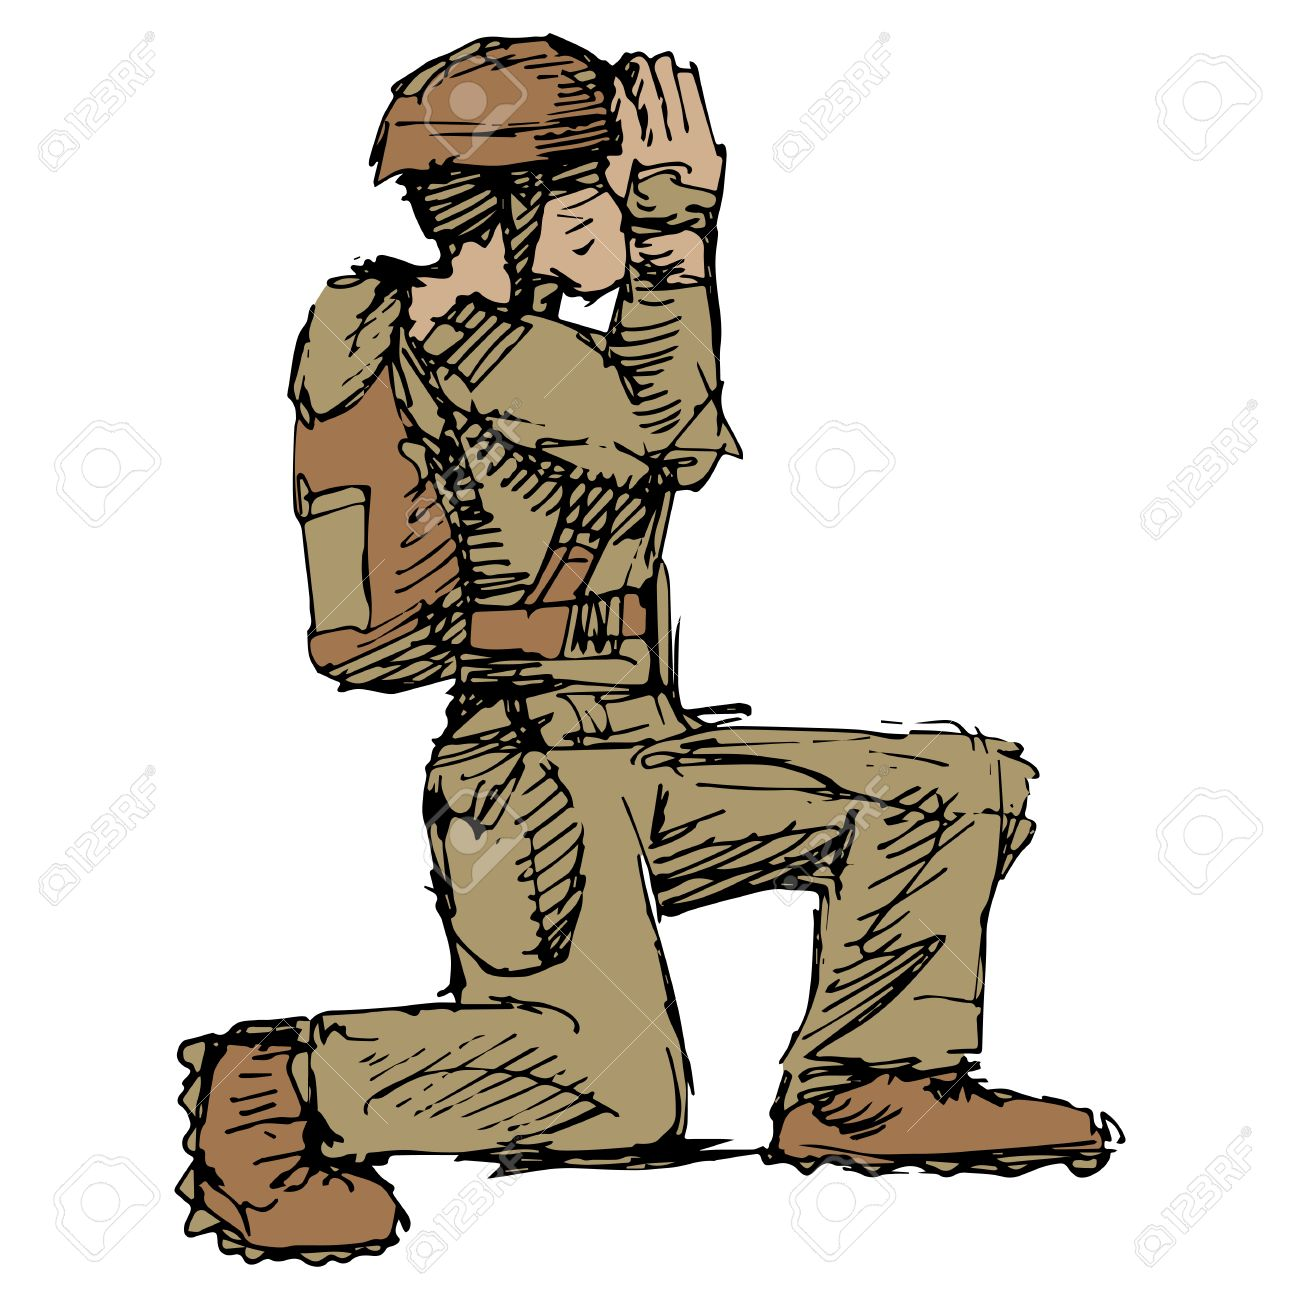 1300x1300 An Image Of A Kneeling Soldier Saluting. Royalty Free Cliparts